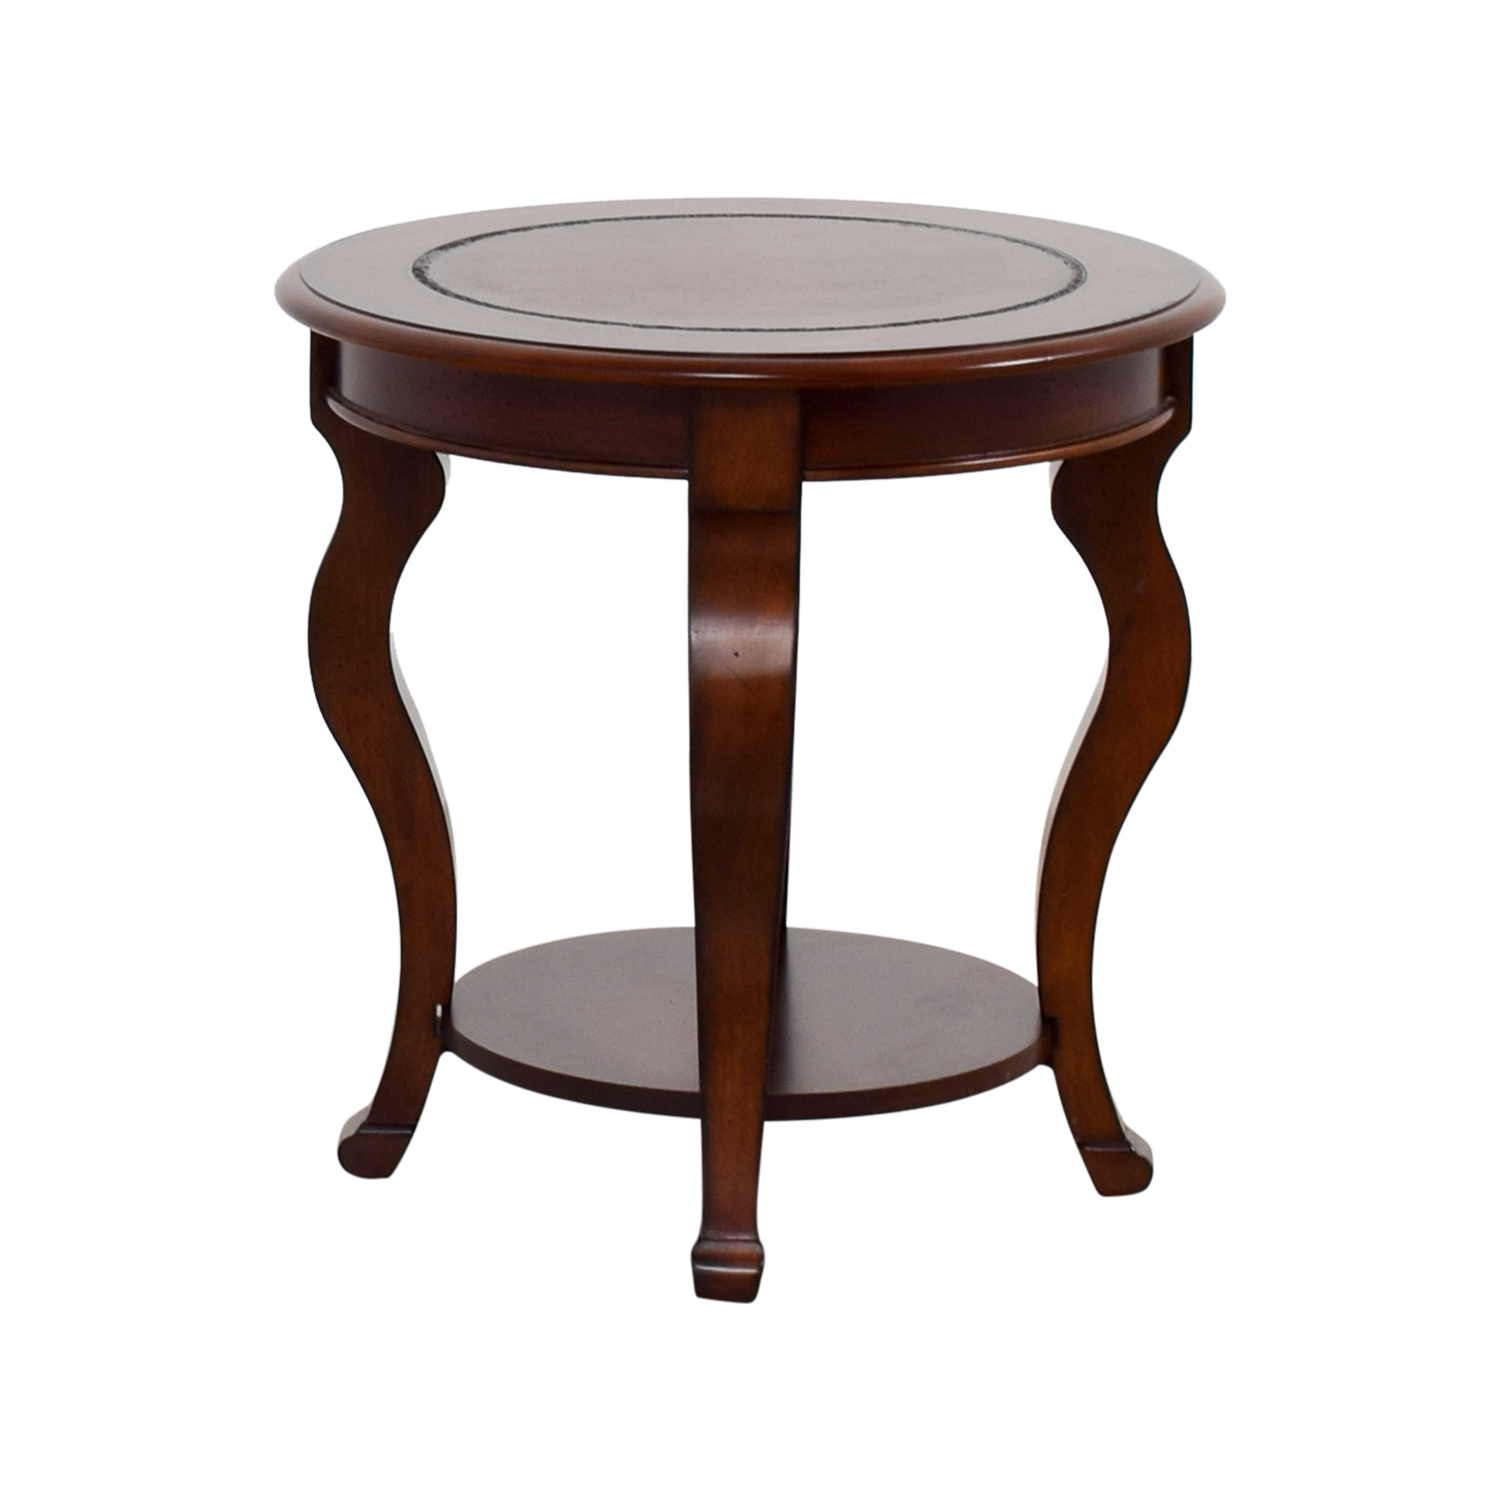 56 off jonathan charles johnathan charles round side table tables